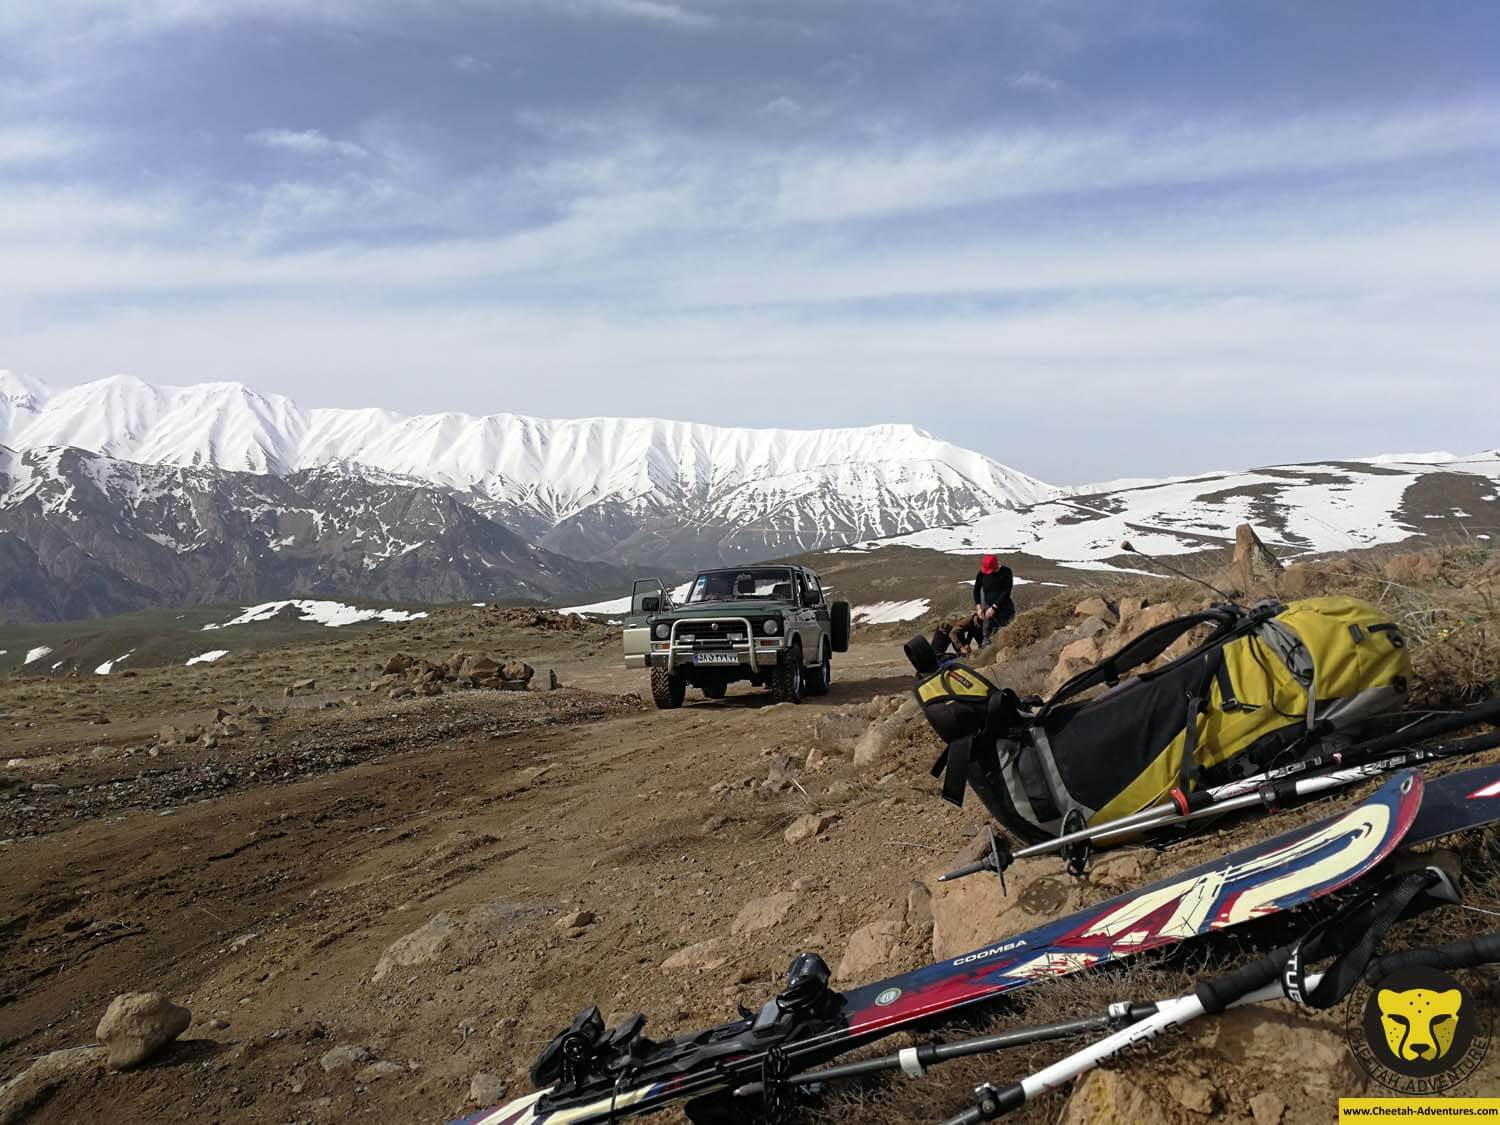 5-1 Transfer close to Goosfandsara (3100m), Doberar Range at the background, Damavand Ski Touring